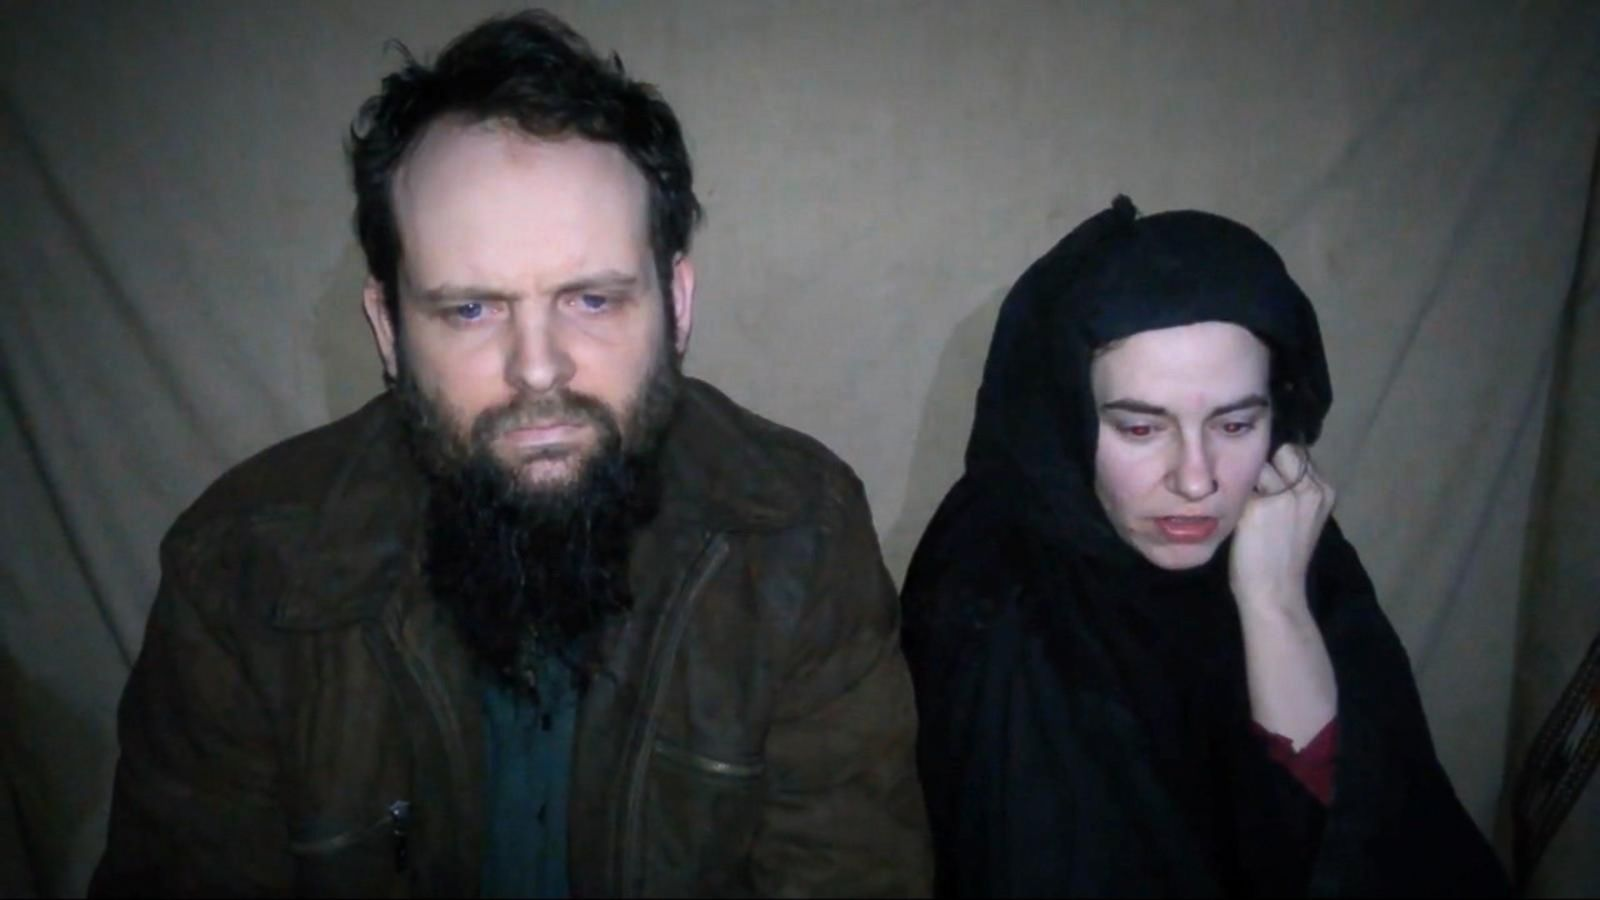 VIDEO: American Hostage of Taliban Appears in New Video